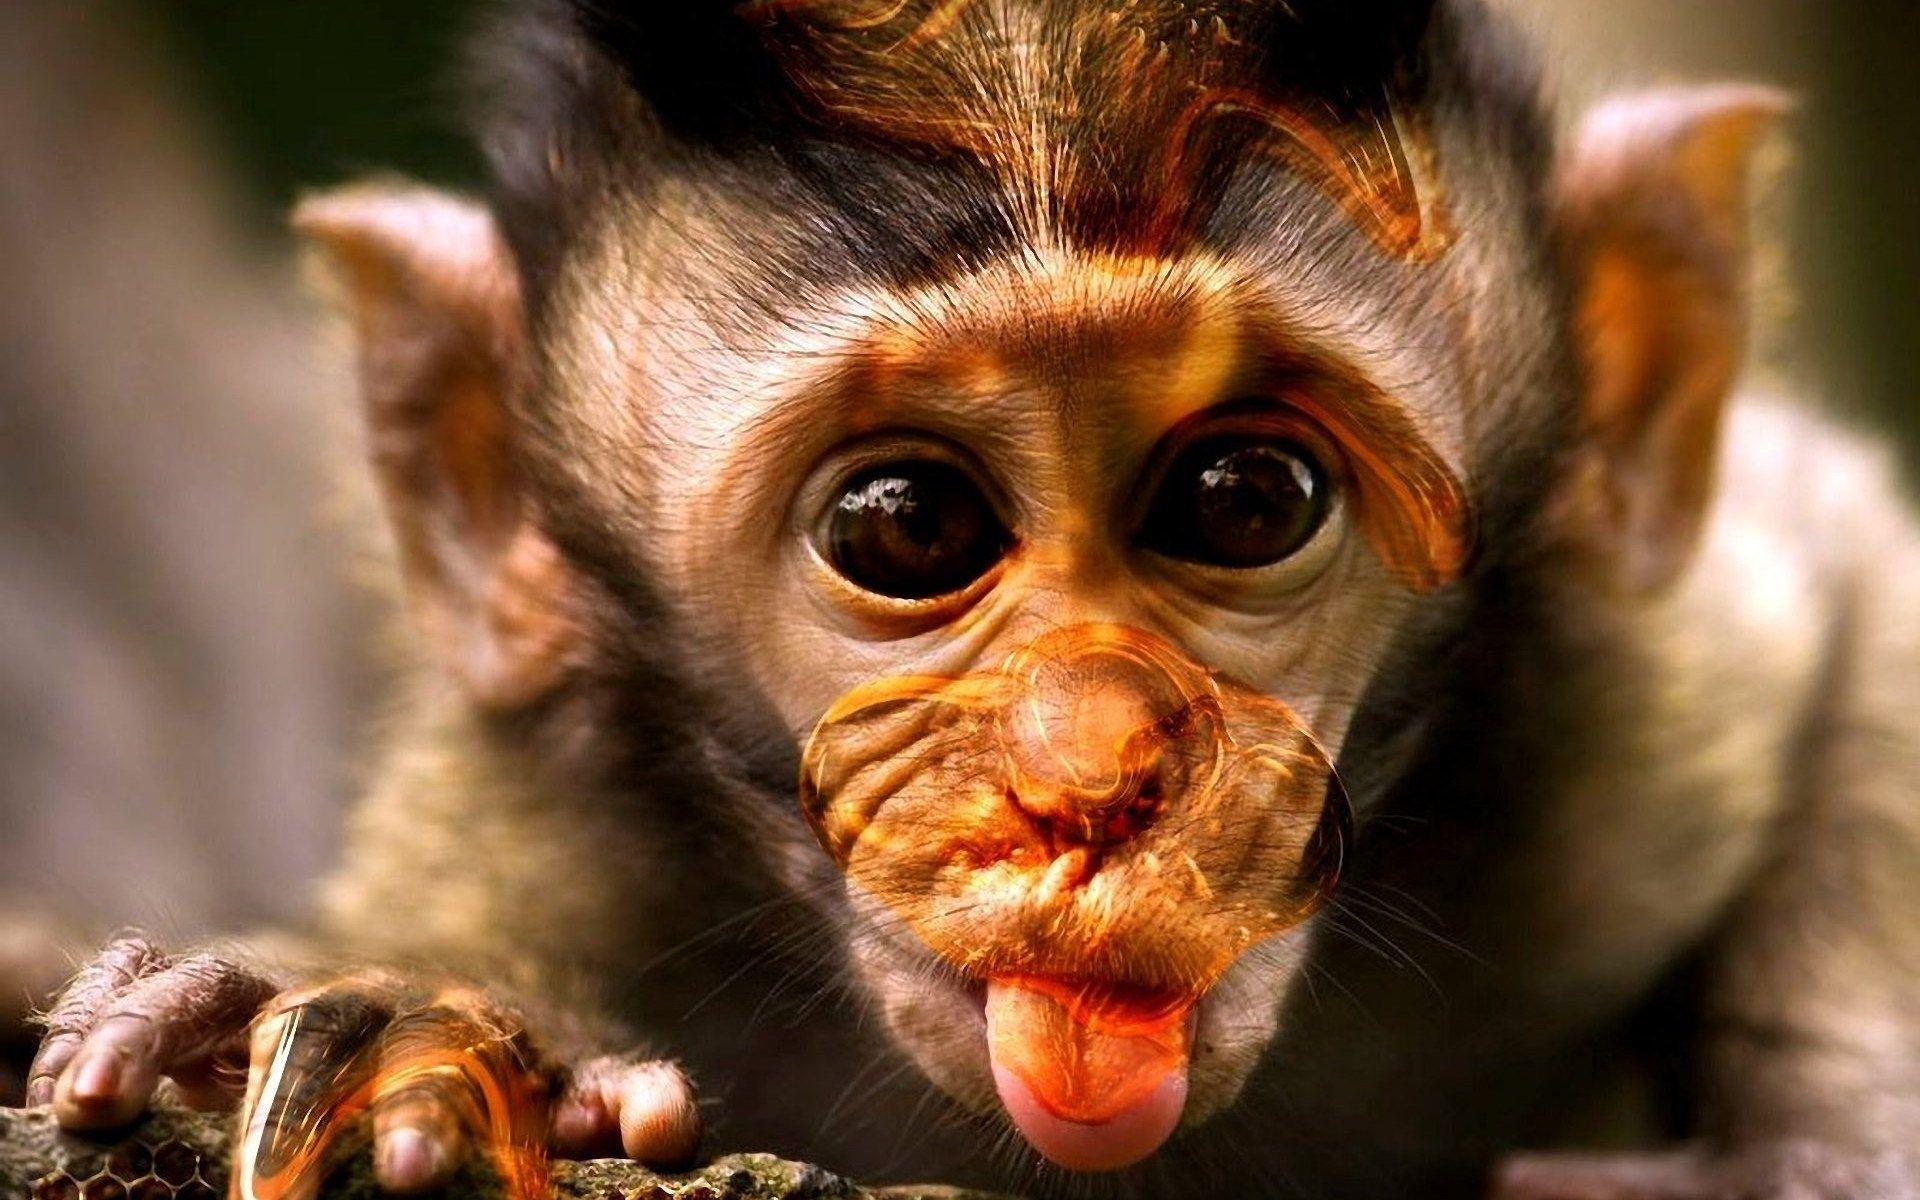 funny monkey wallpaper - photo #8